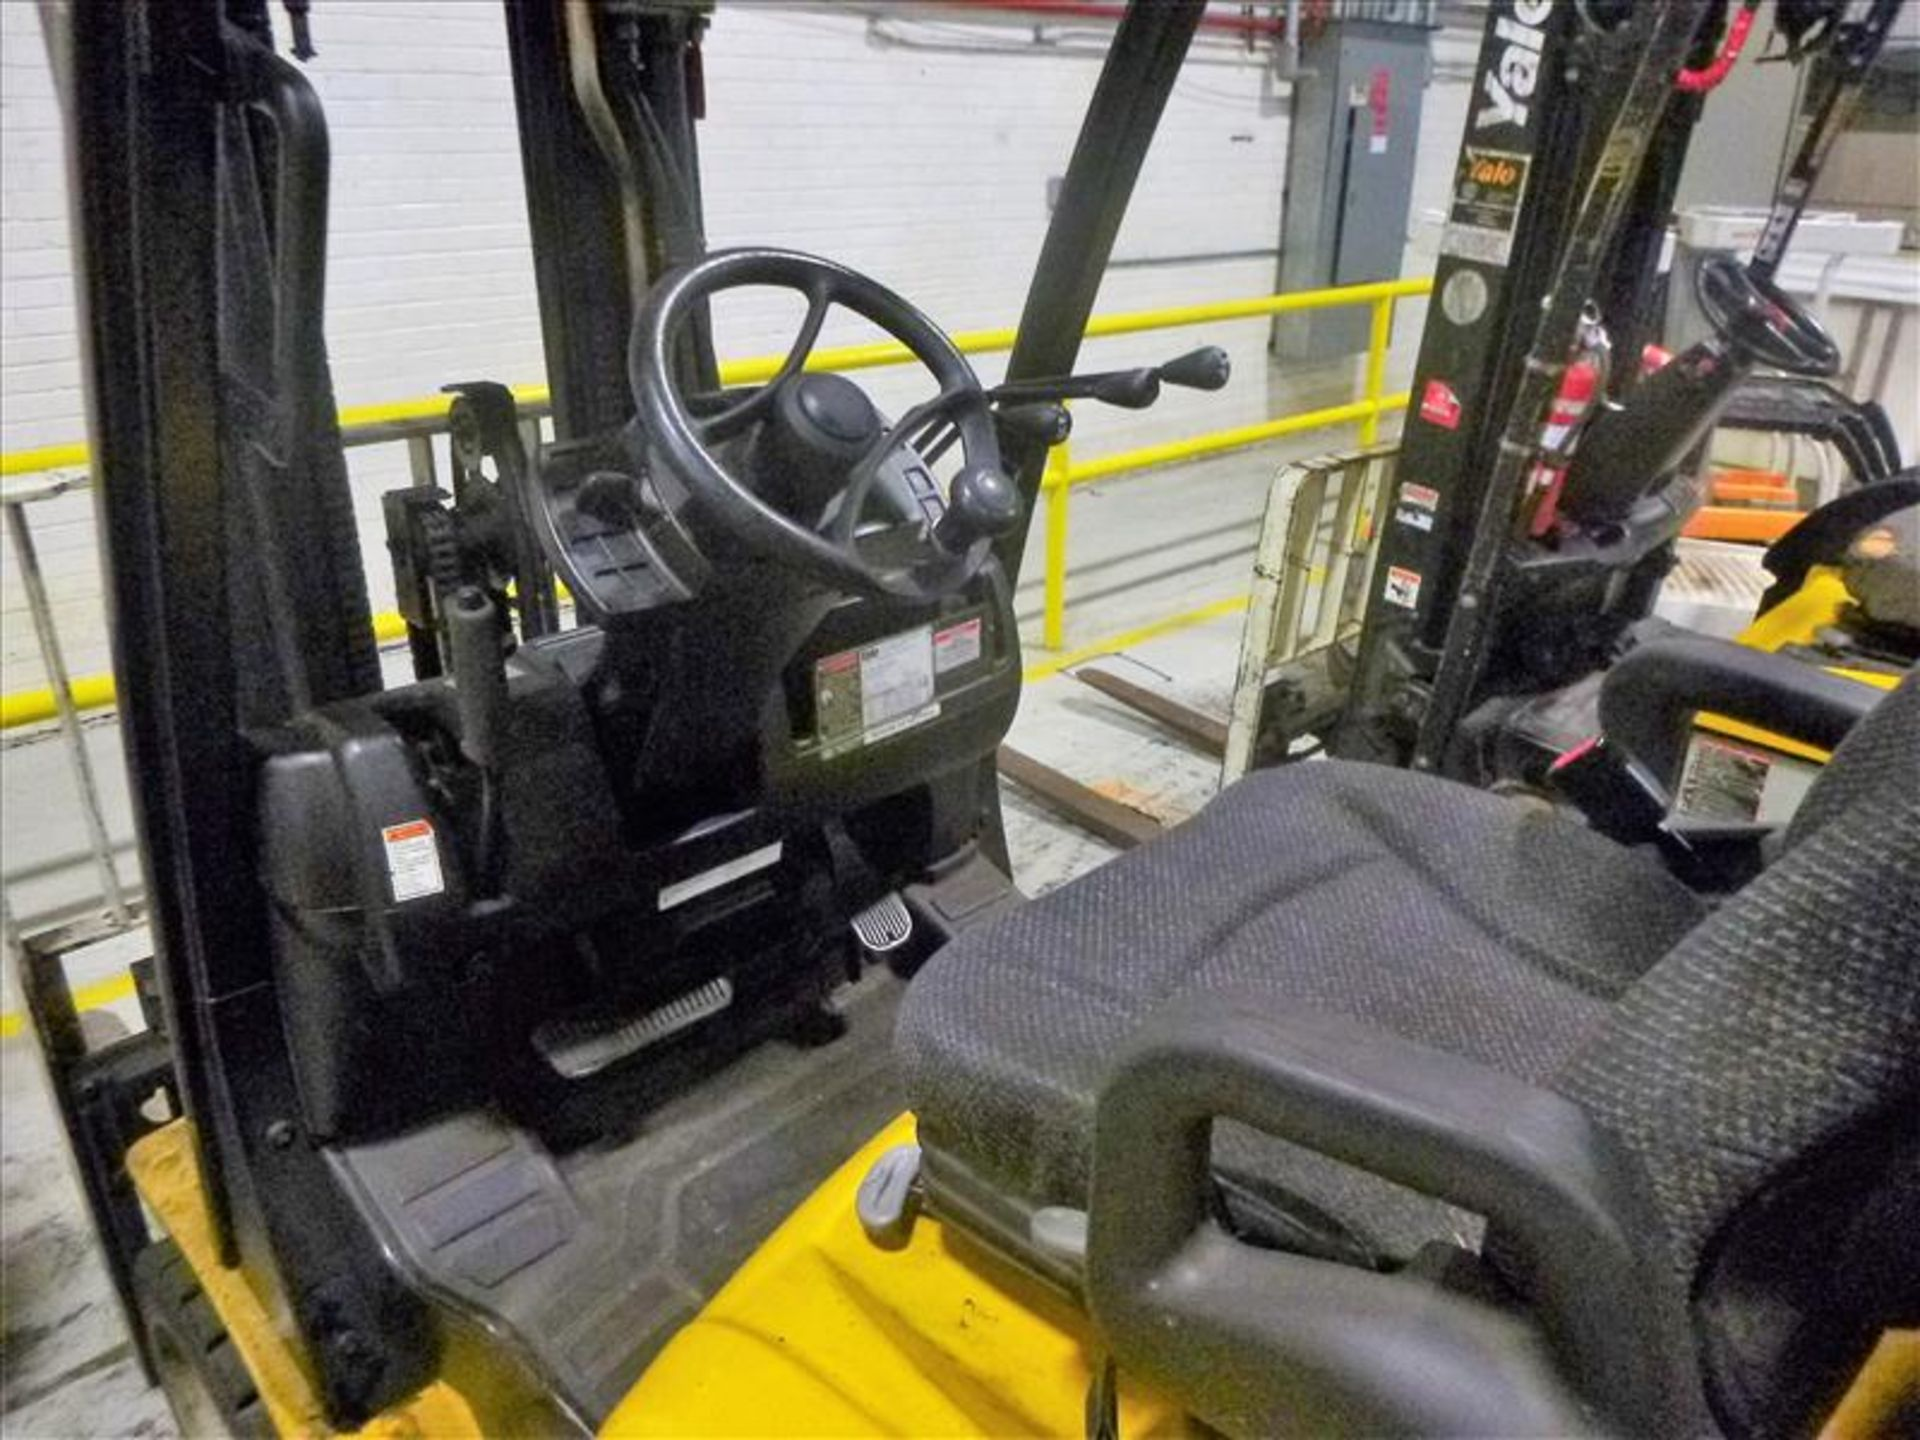 Yale fork lift truck, mod. GLC060VXNSEE085, ser. no. A910V23178L, LPG, 5500 lbs cap., 181 in. lift - Image 3 of 4